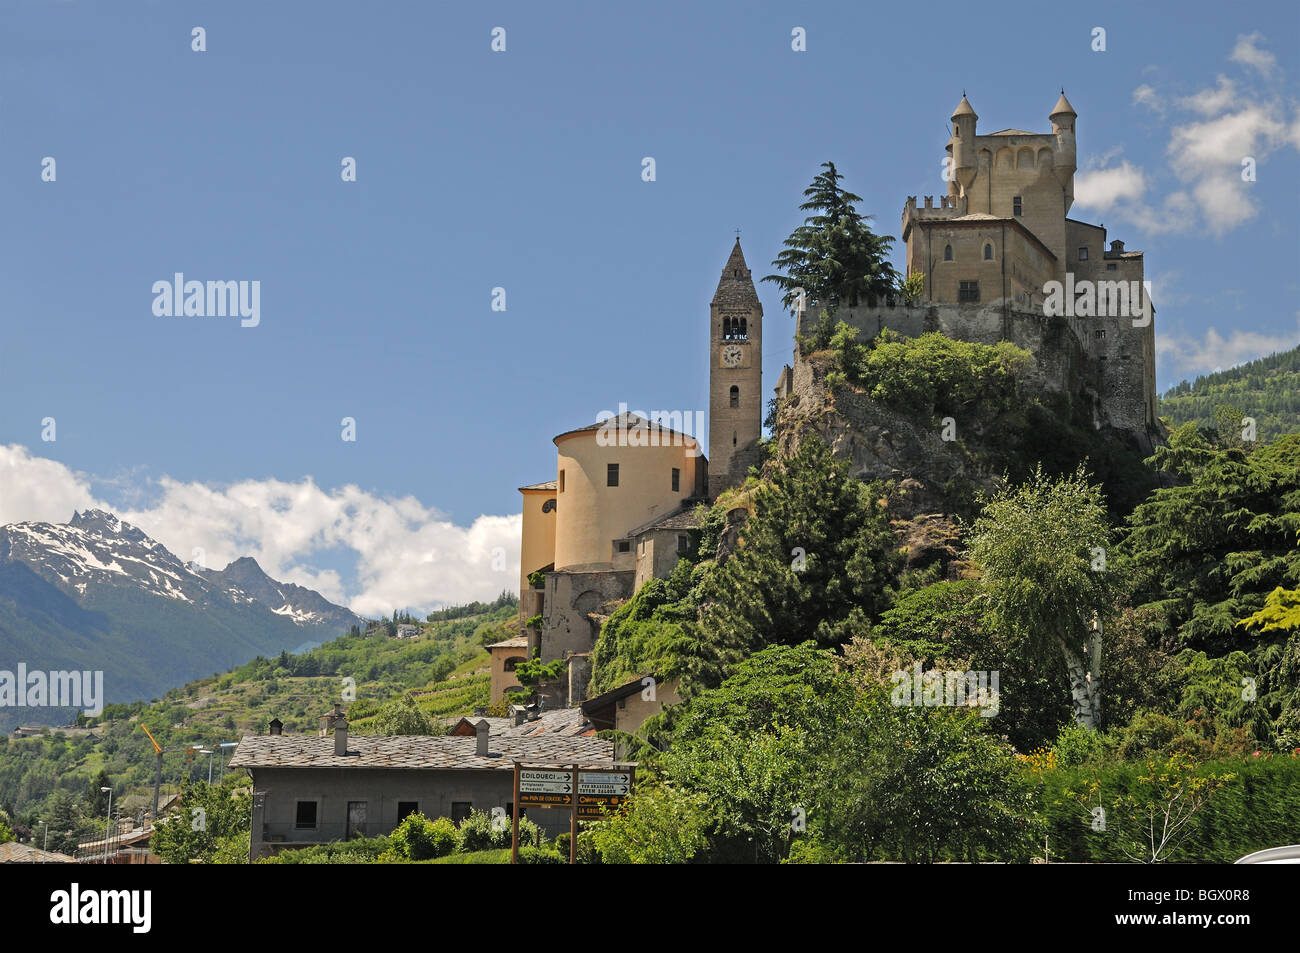 Saint St Pierre Castle Castello Parish Church and square bell tower 4 km west of Aosta Italy with alpine mountains Stock Photo